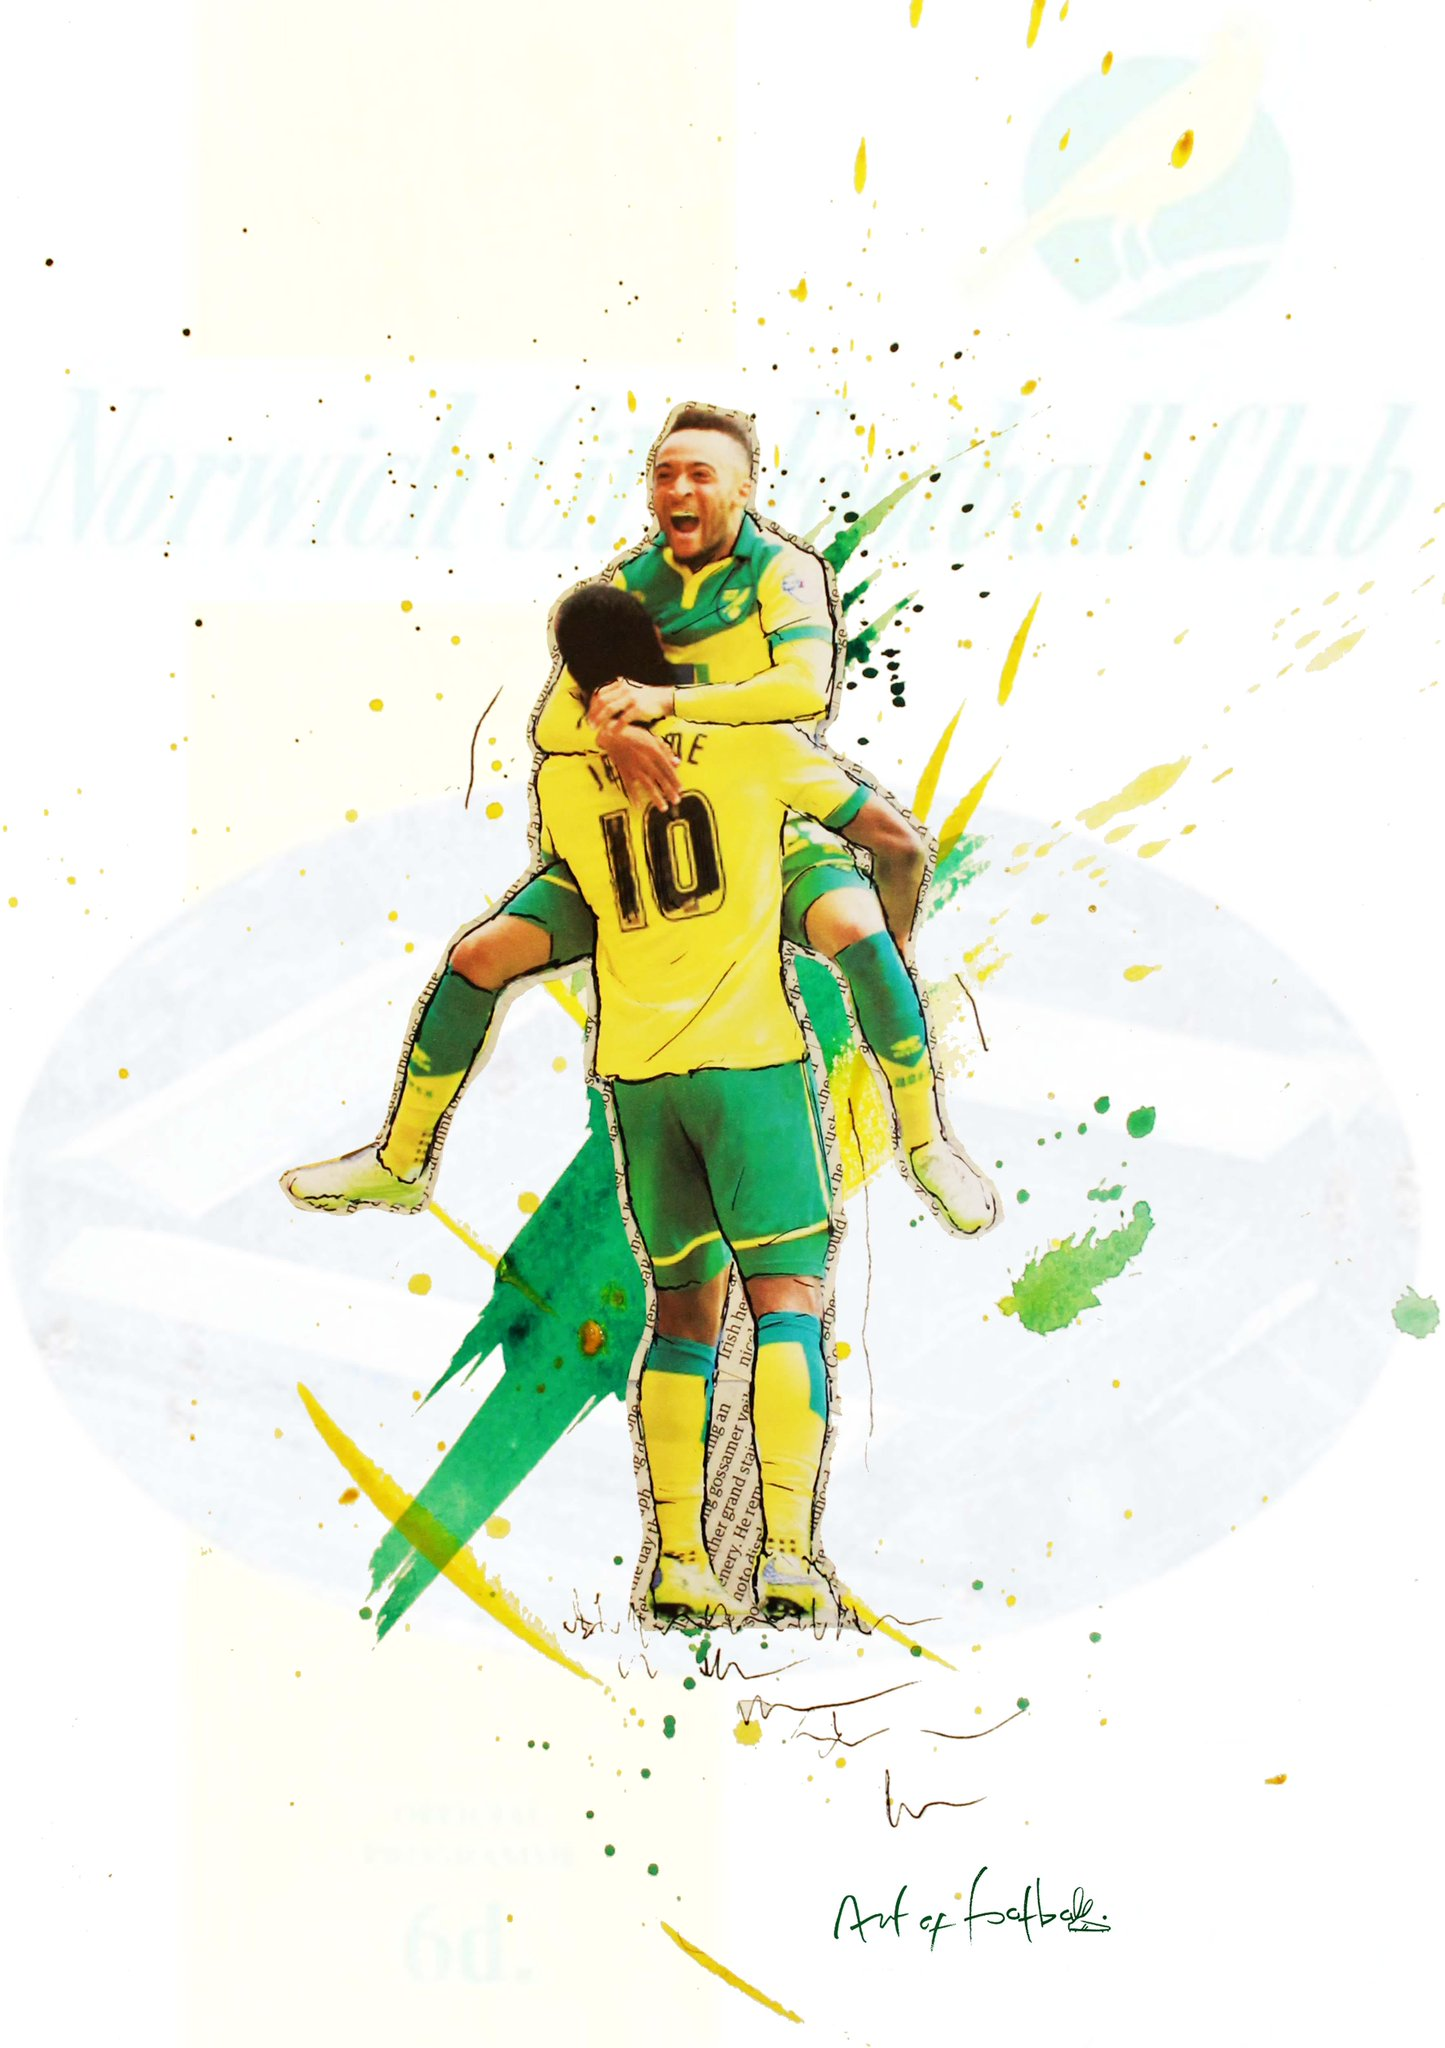 "RT @Art_of_Football: @stephenfry How about a RT for our ""No Contest"" design celebrating #NCFC glorious promotion http://t.co/elOUMJJt7H htt…"